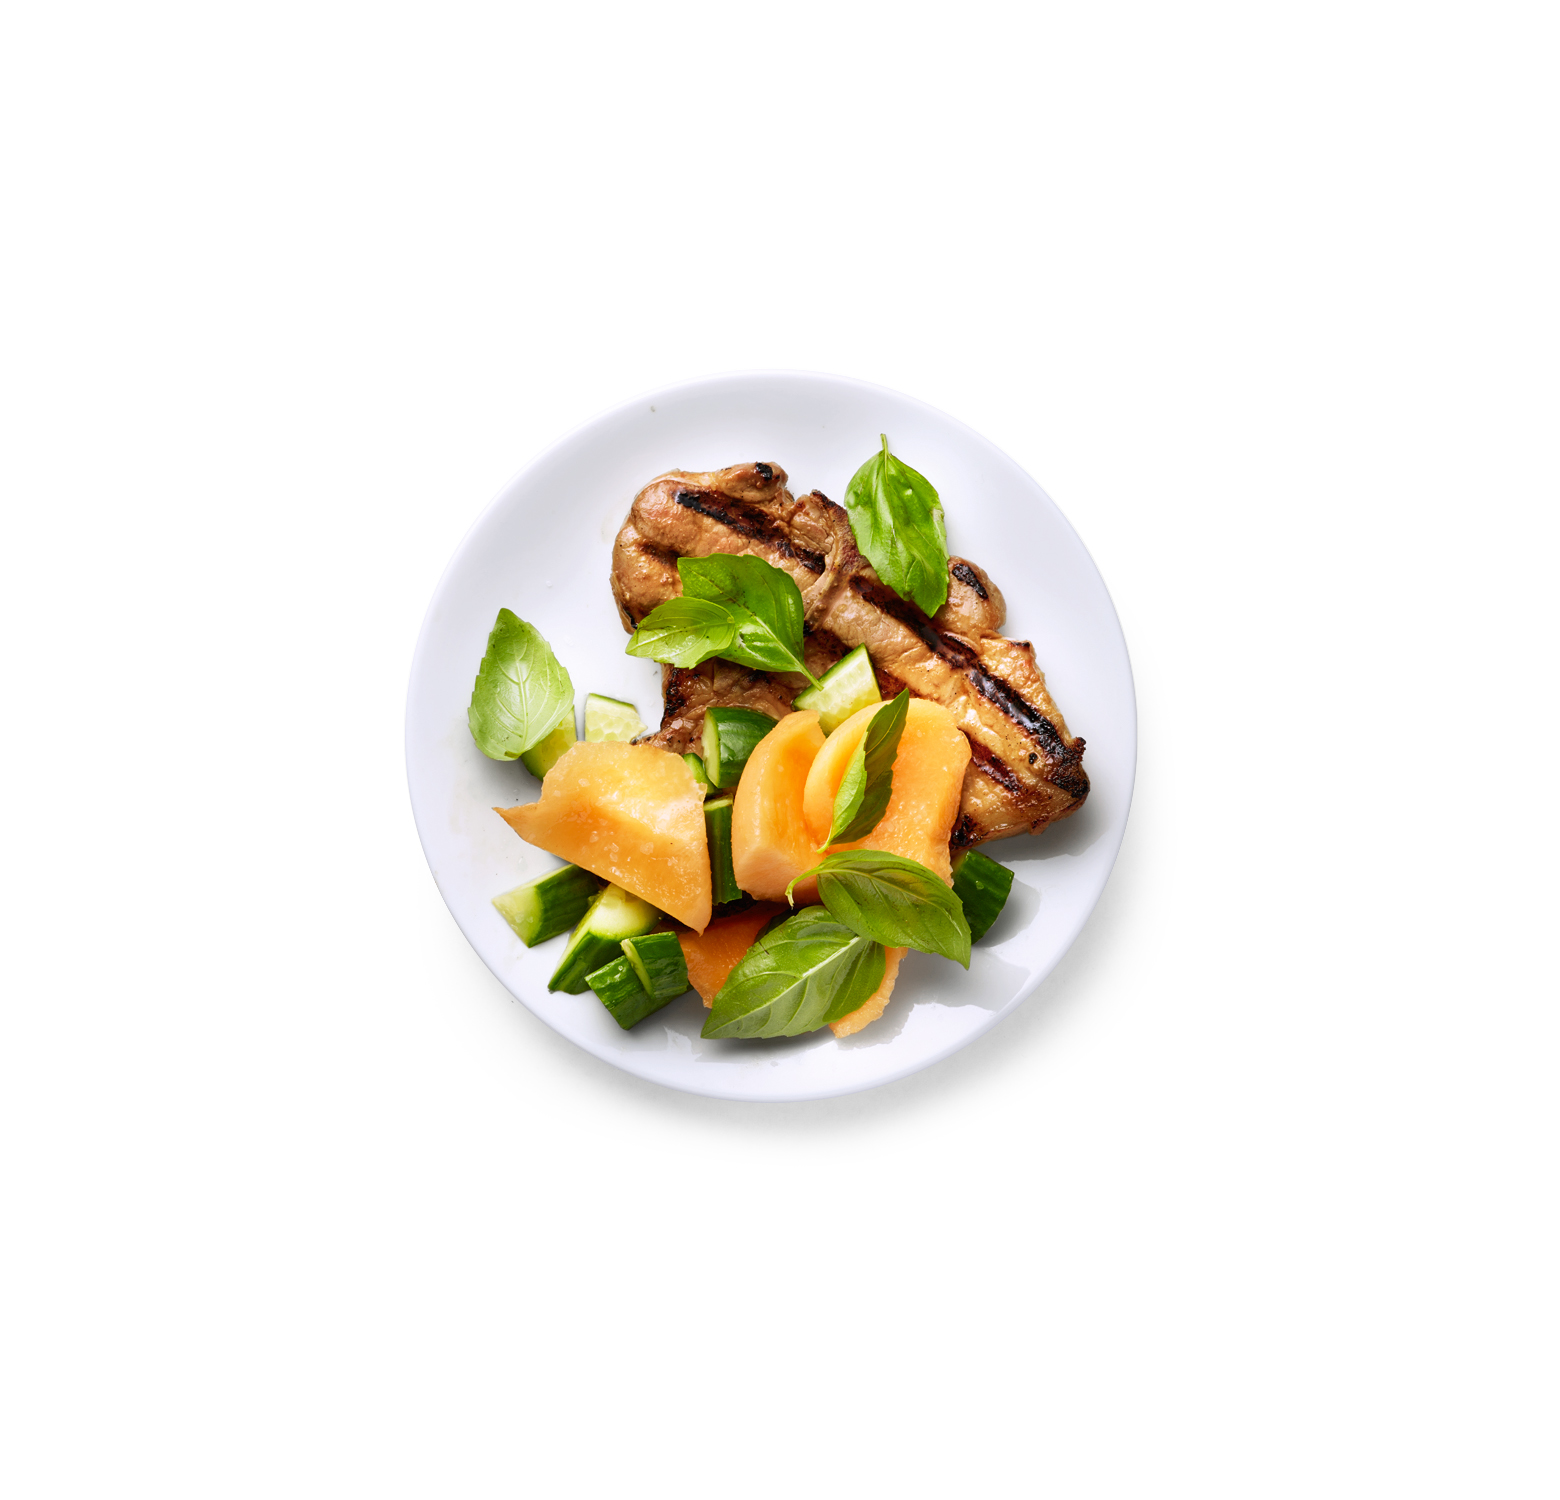 Vietnamese Pork Chops with Cantaloupe and Basil Salad